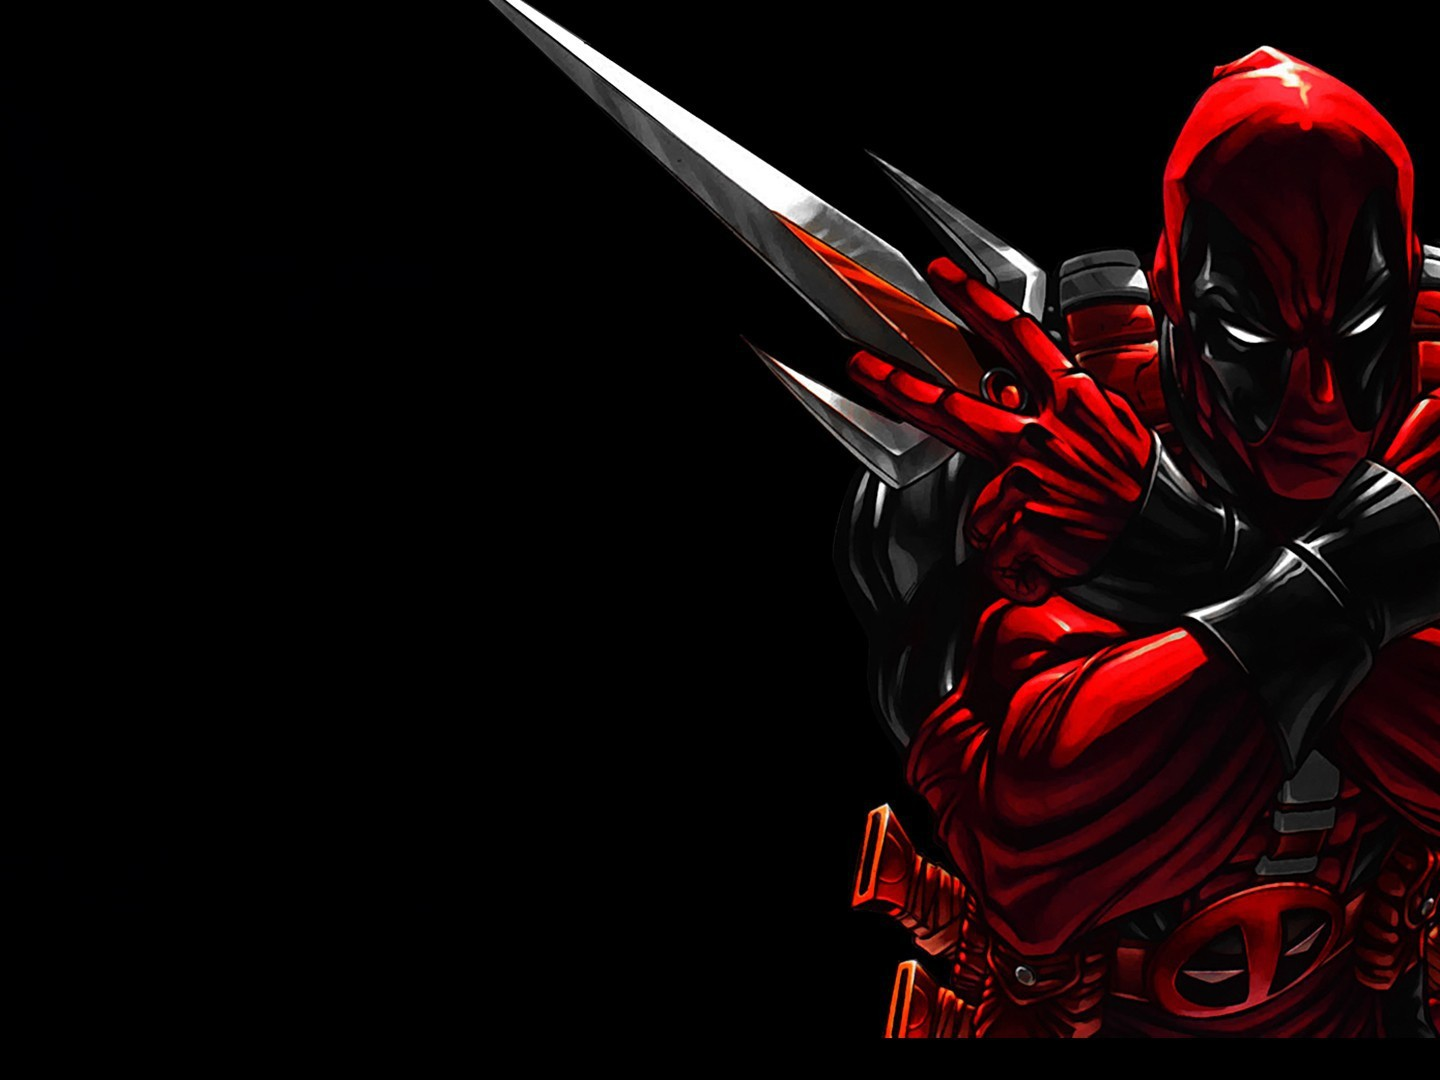 Deadpool Hd Wallpaper Iphone 6 Comics Deadpool Wade Wilson Wallpaper Allwallpaper In